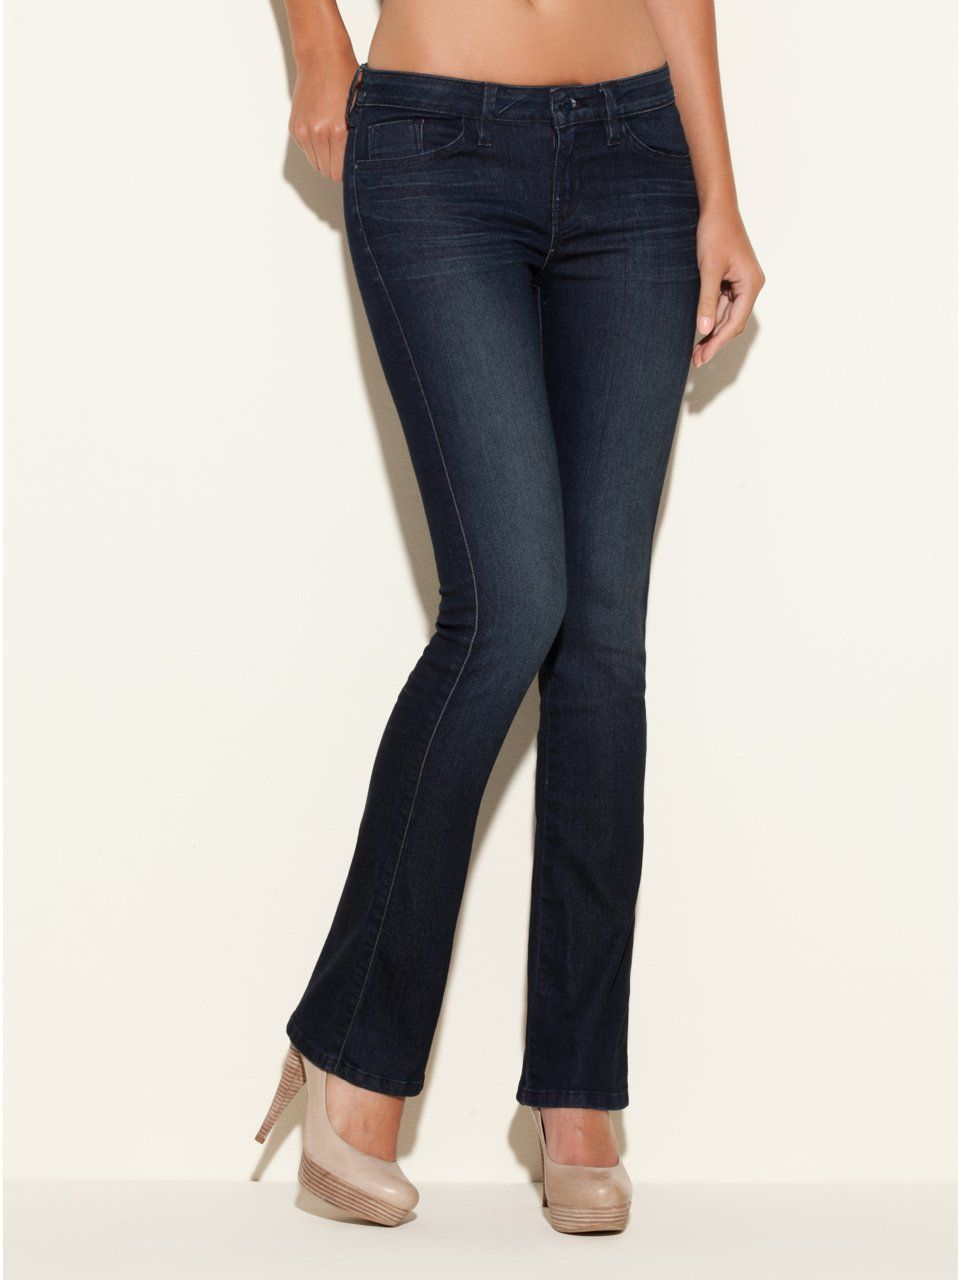 7ca9990e5 GUESS Brittney Petite Bootcut Jeans in CRX Was, CRXN WASH (29)   n ...